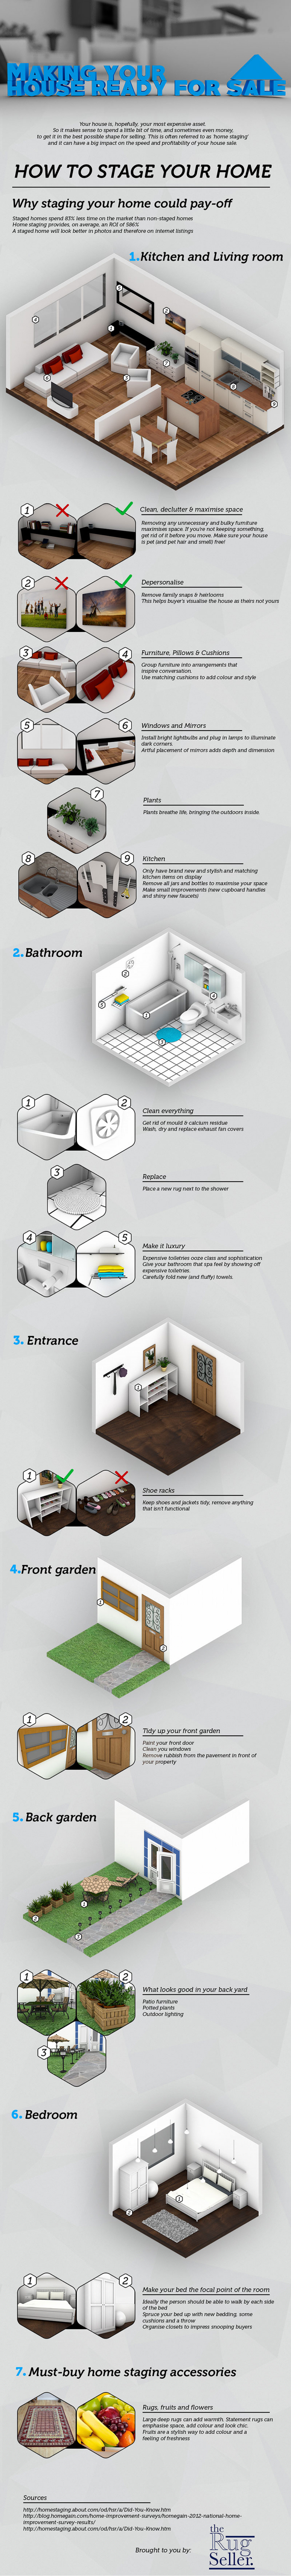 The Rug Seller Guide to Home Staging Infographic